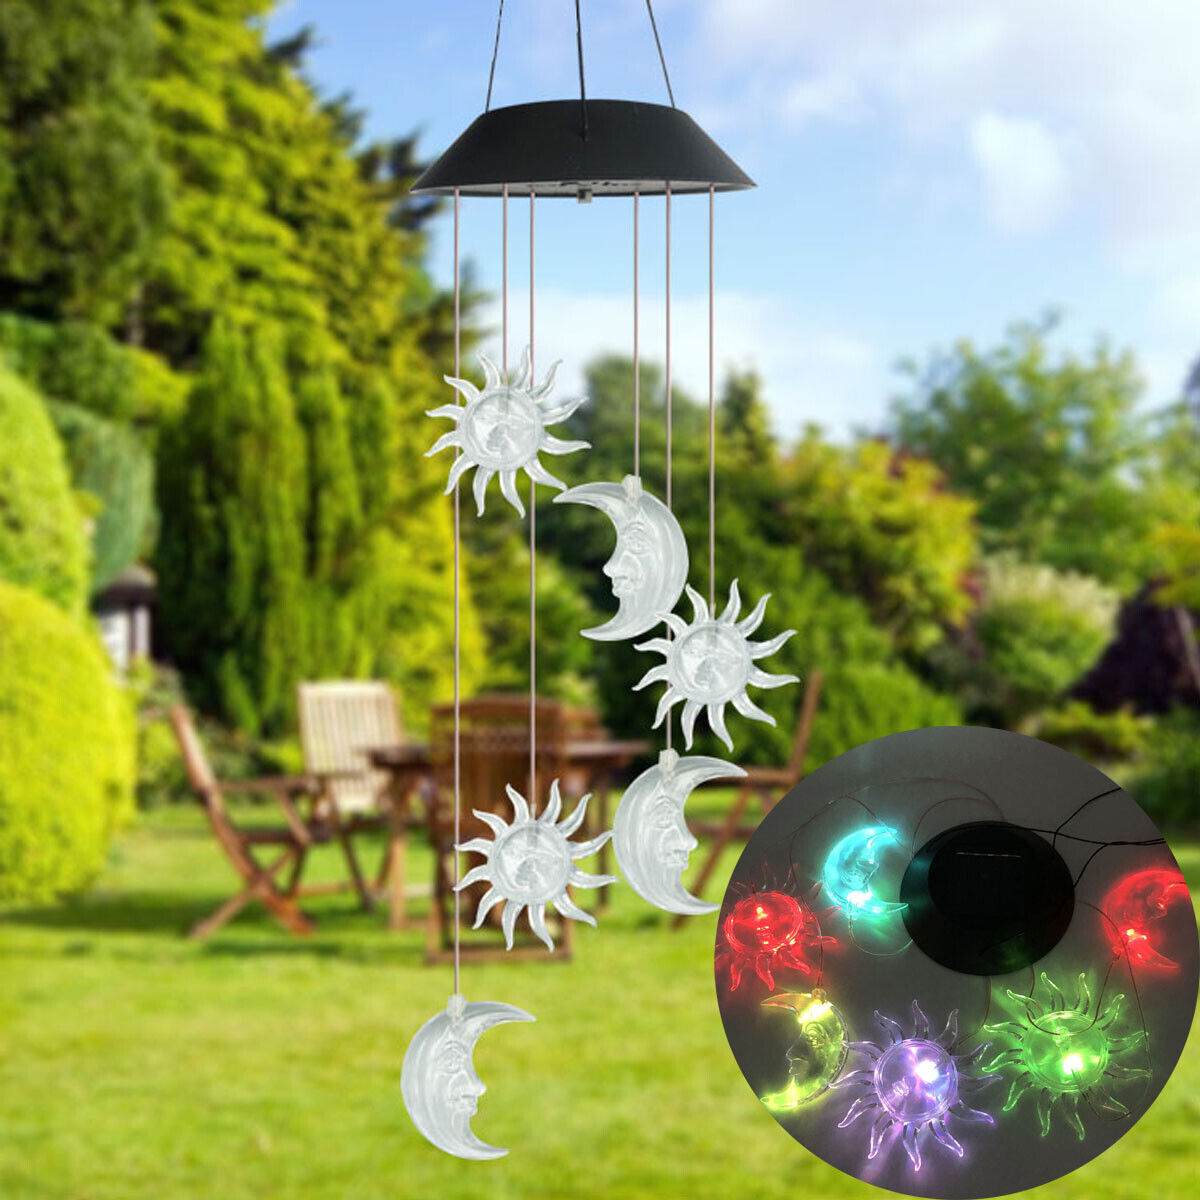 Color-Changing Outdoor LED Solar Sun and Moon Wind Chime Light Yard Garden Decor